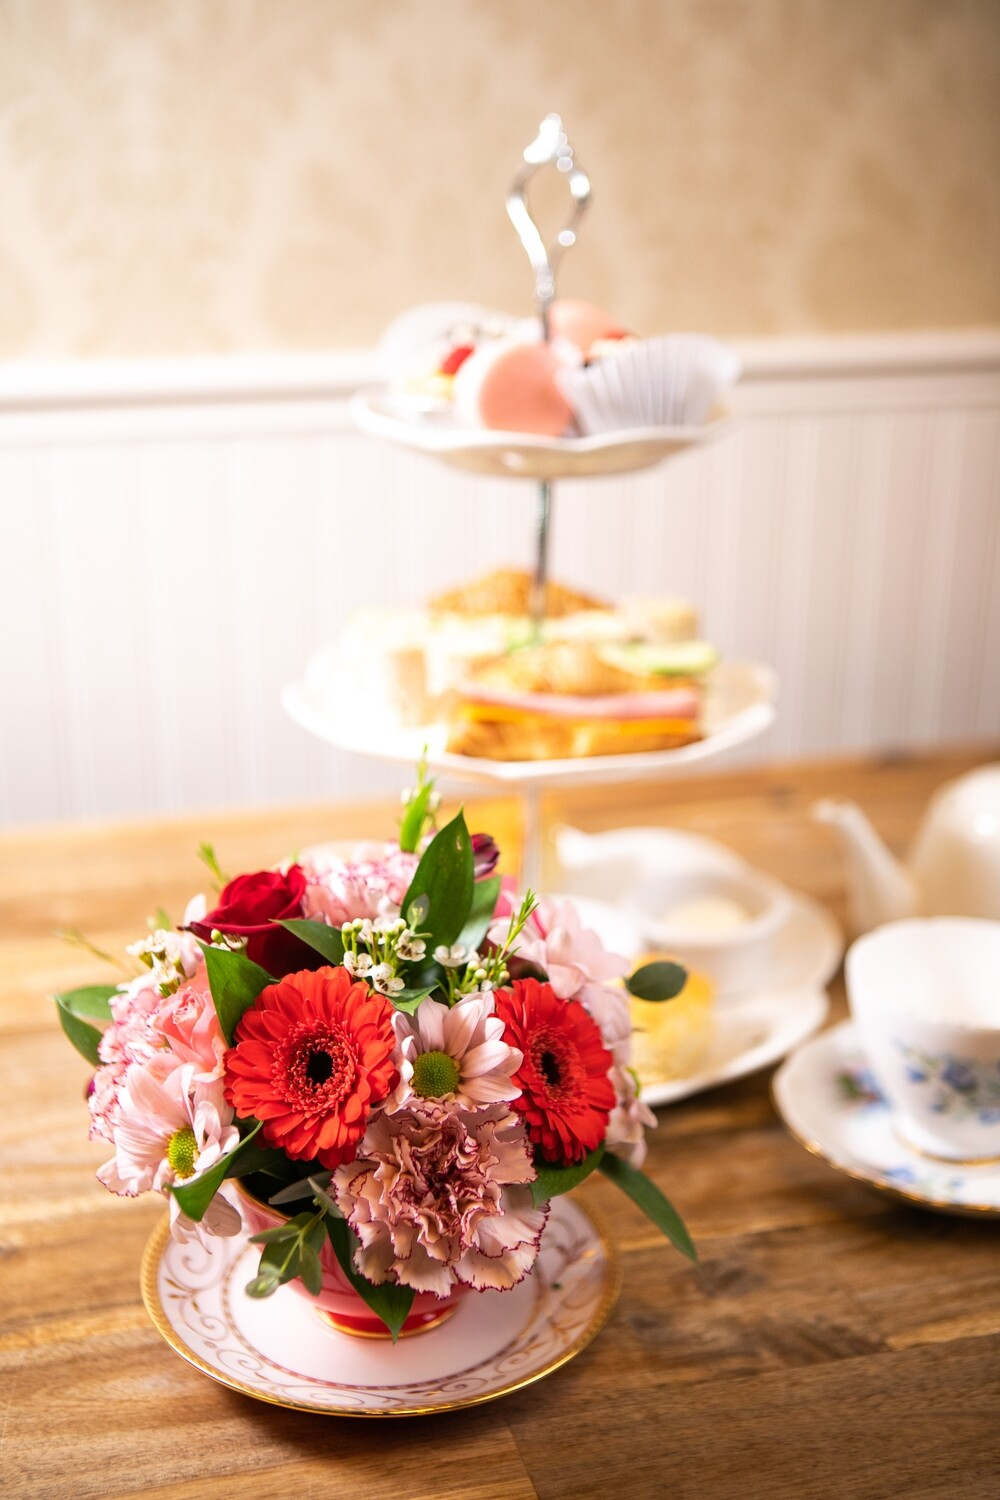 TEA CUP ARRANGEMENT OF FLOWERS & HIGH TEA FOR TWO